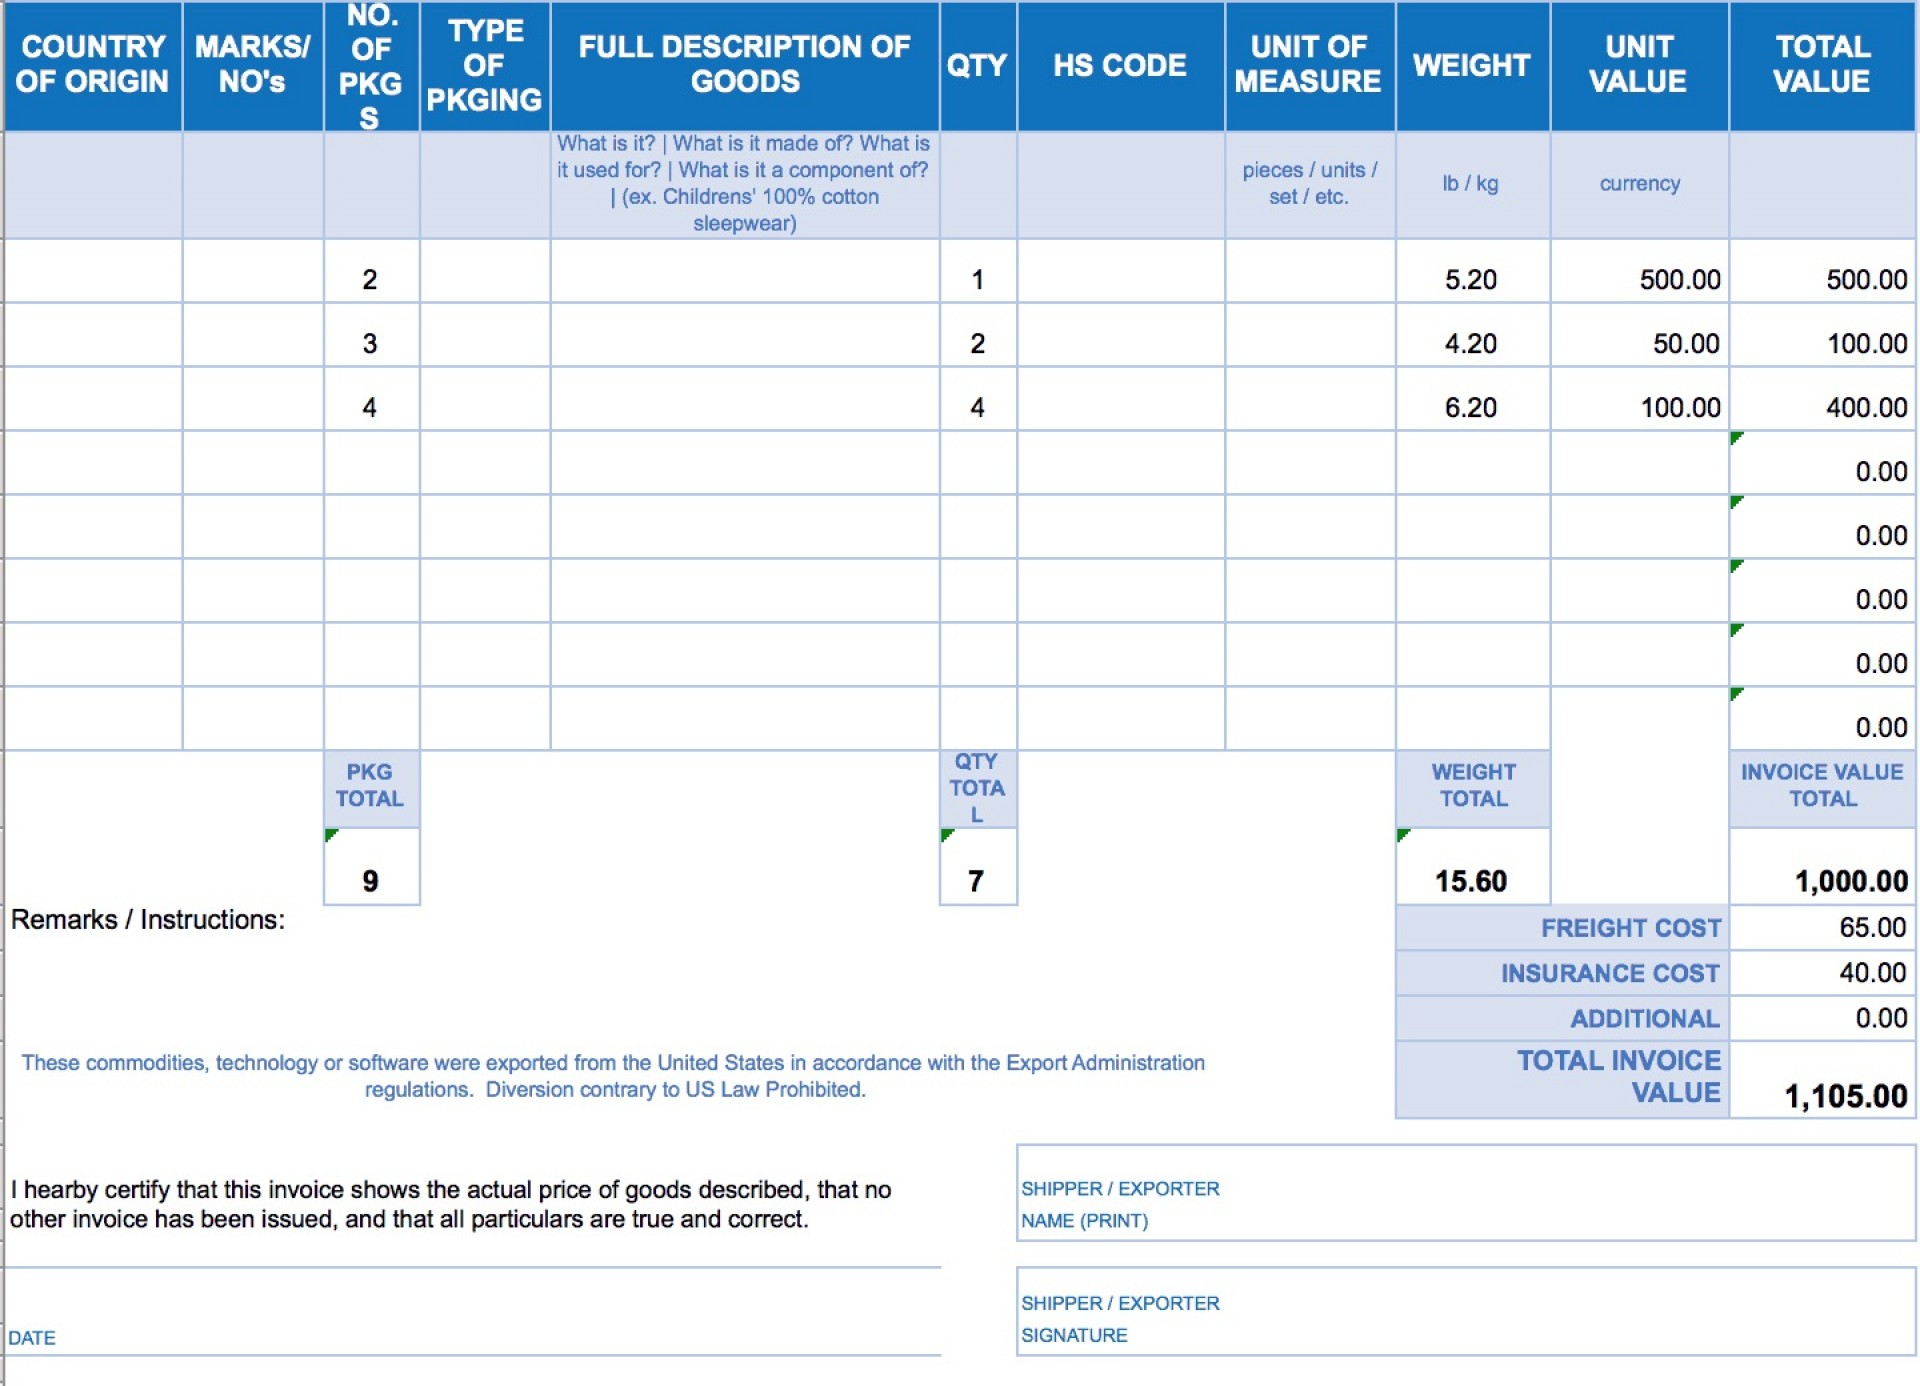 003 Imposing Free Excell Invoice Template Picture  Excel Gst India Canada Tax Australia1920